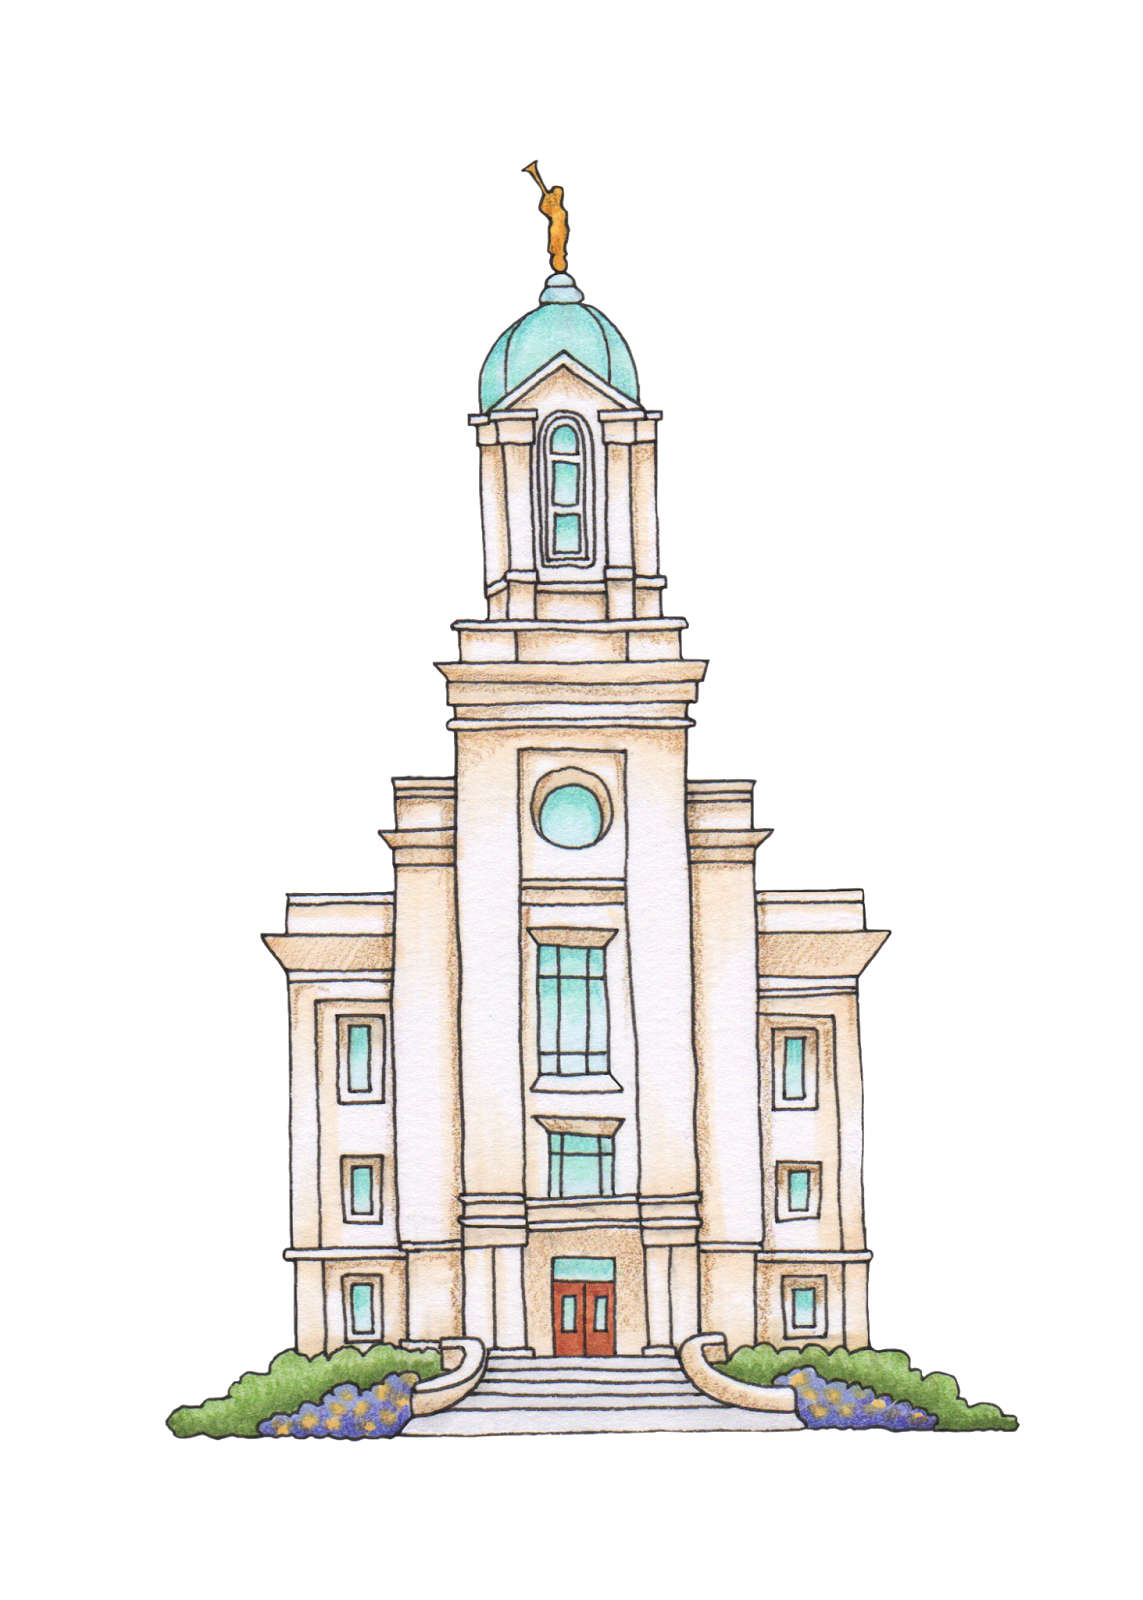 Lds church clipart free image black and white Lds church clipart clipart images gallery for free download ... image black and white